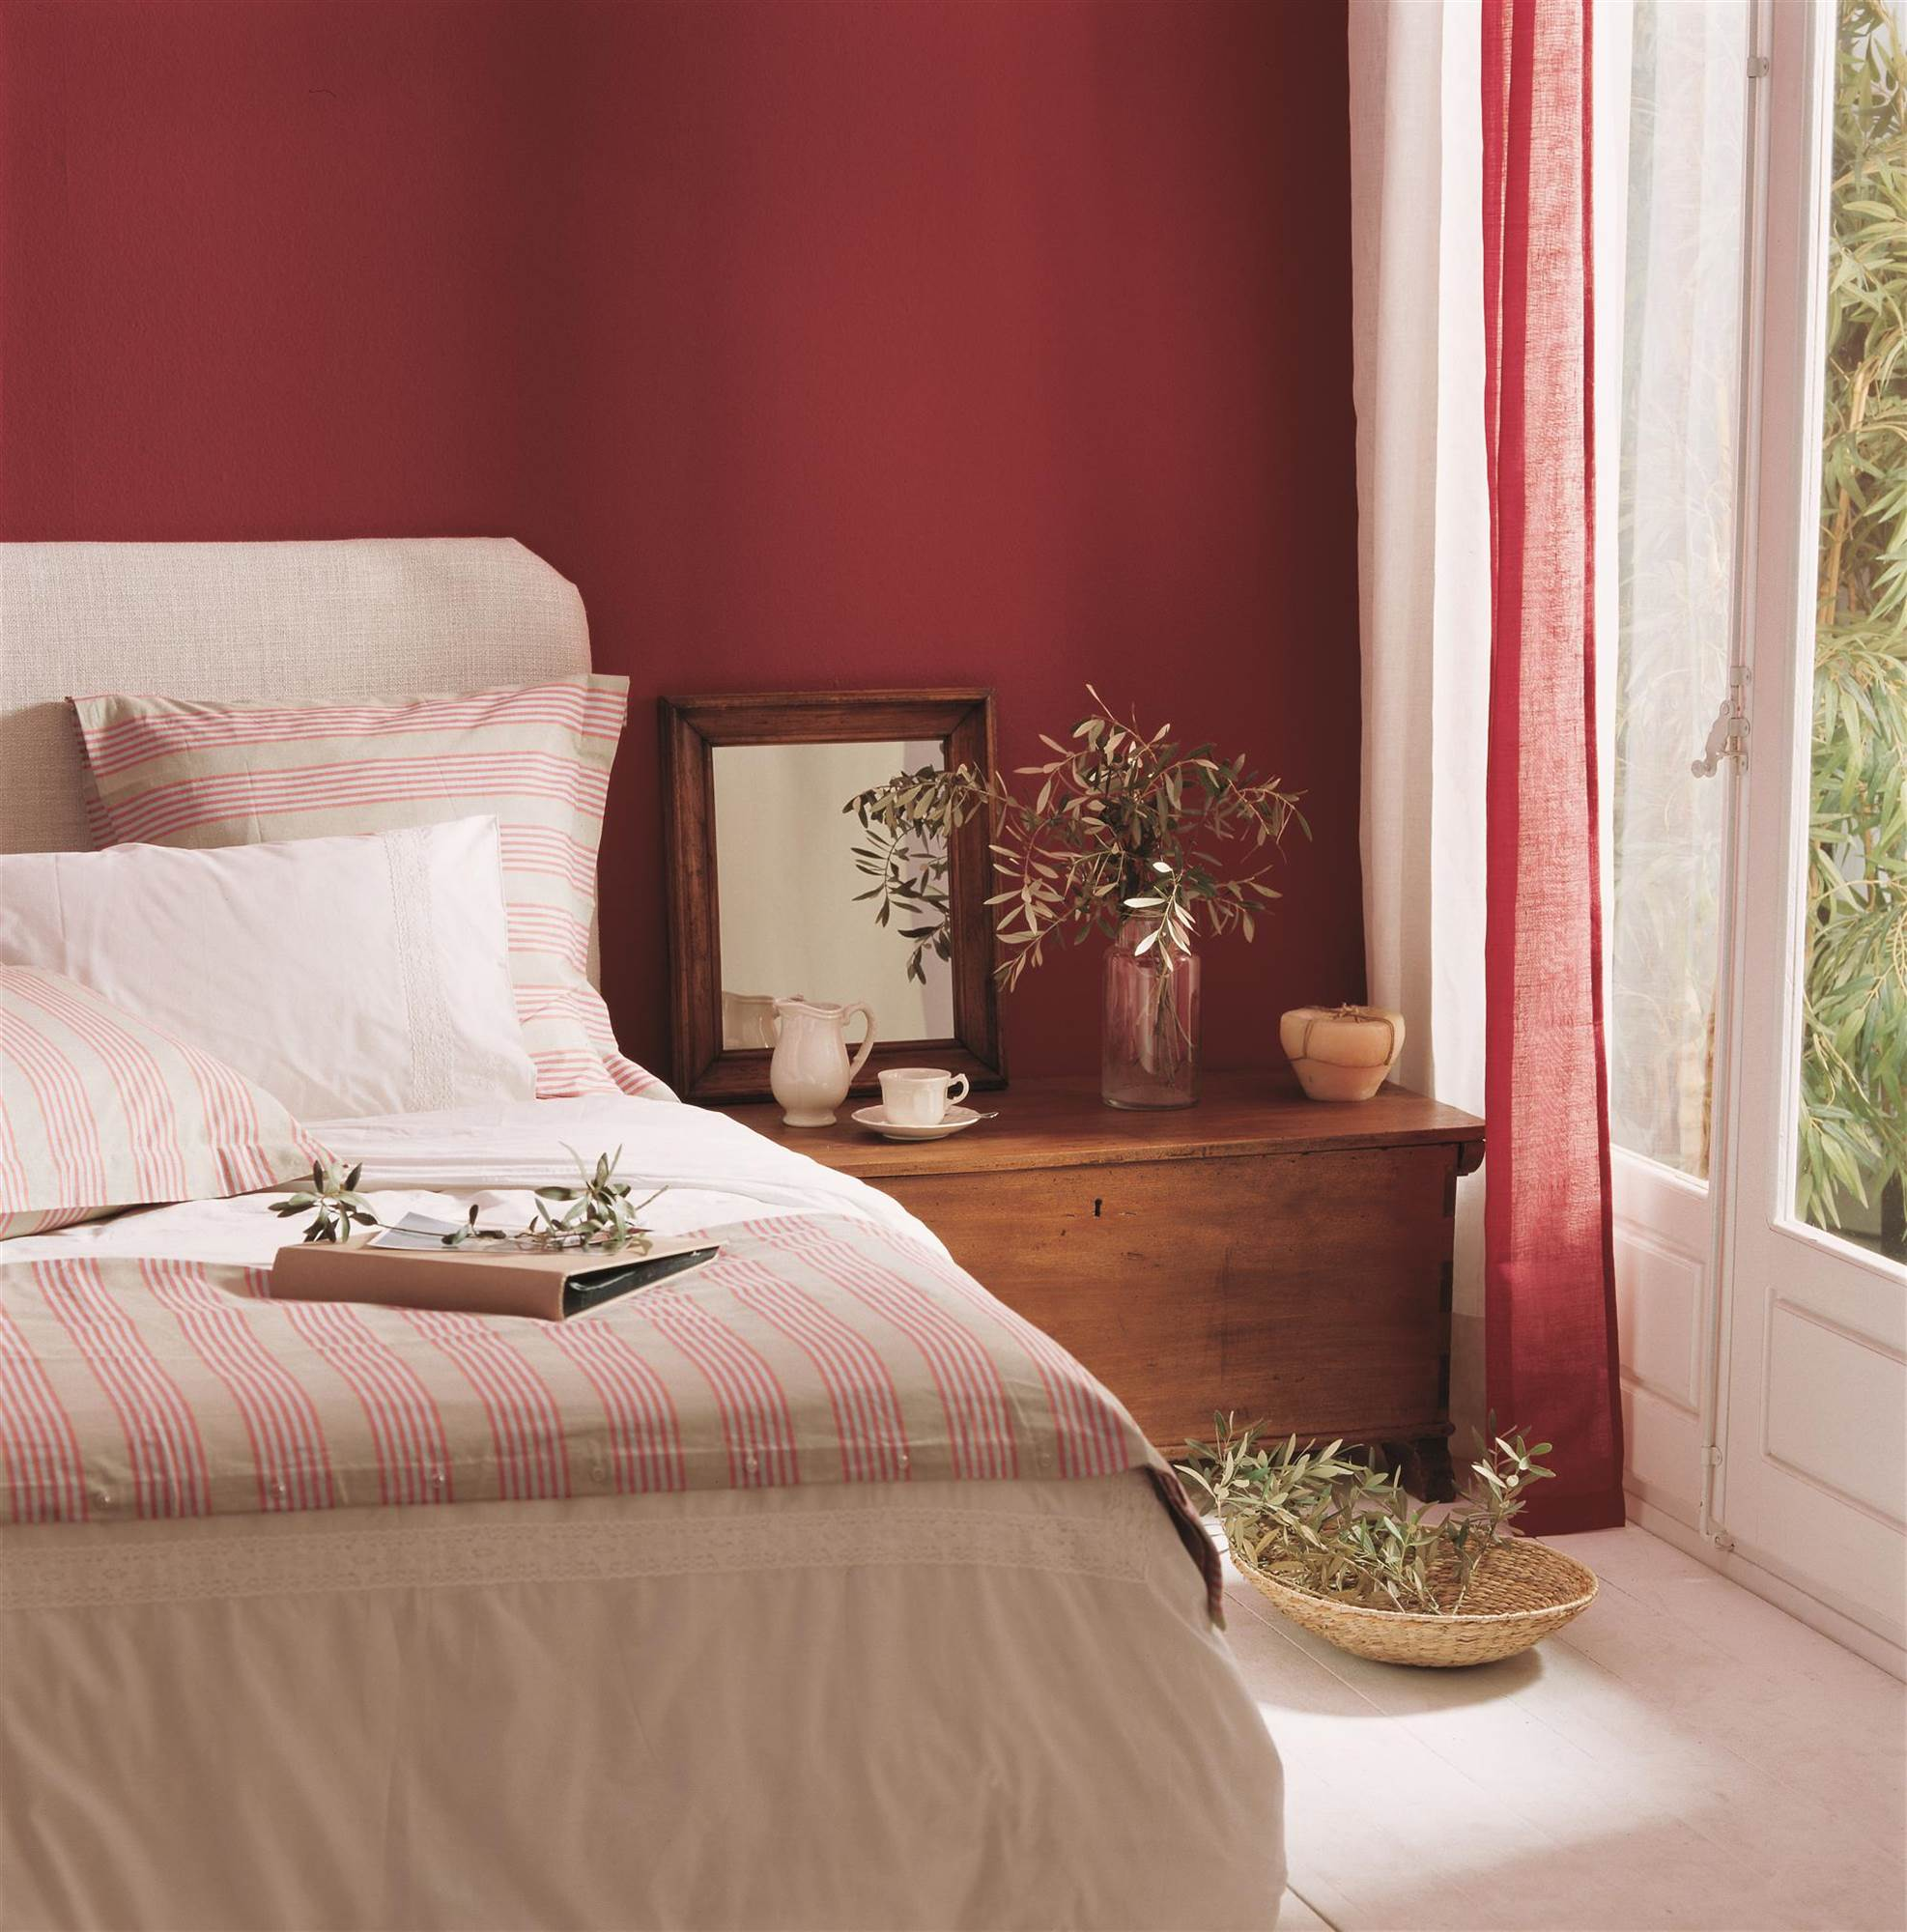 El color rojo en decoraci n for Idea de muebles quedarse